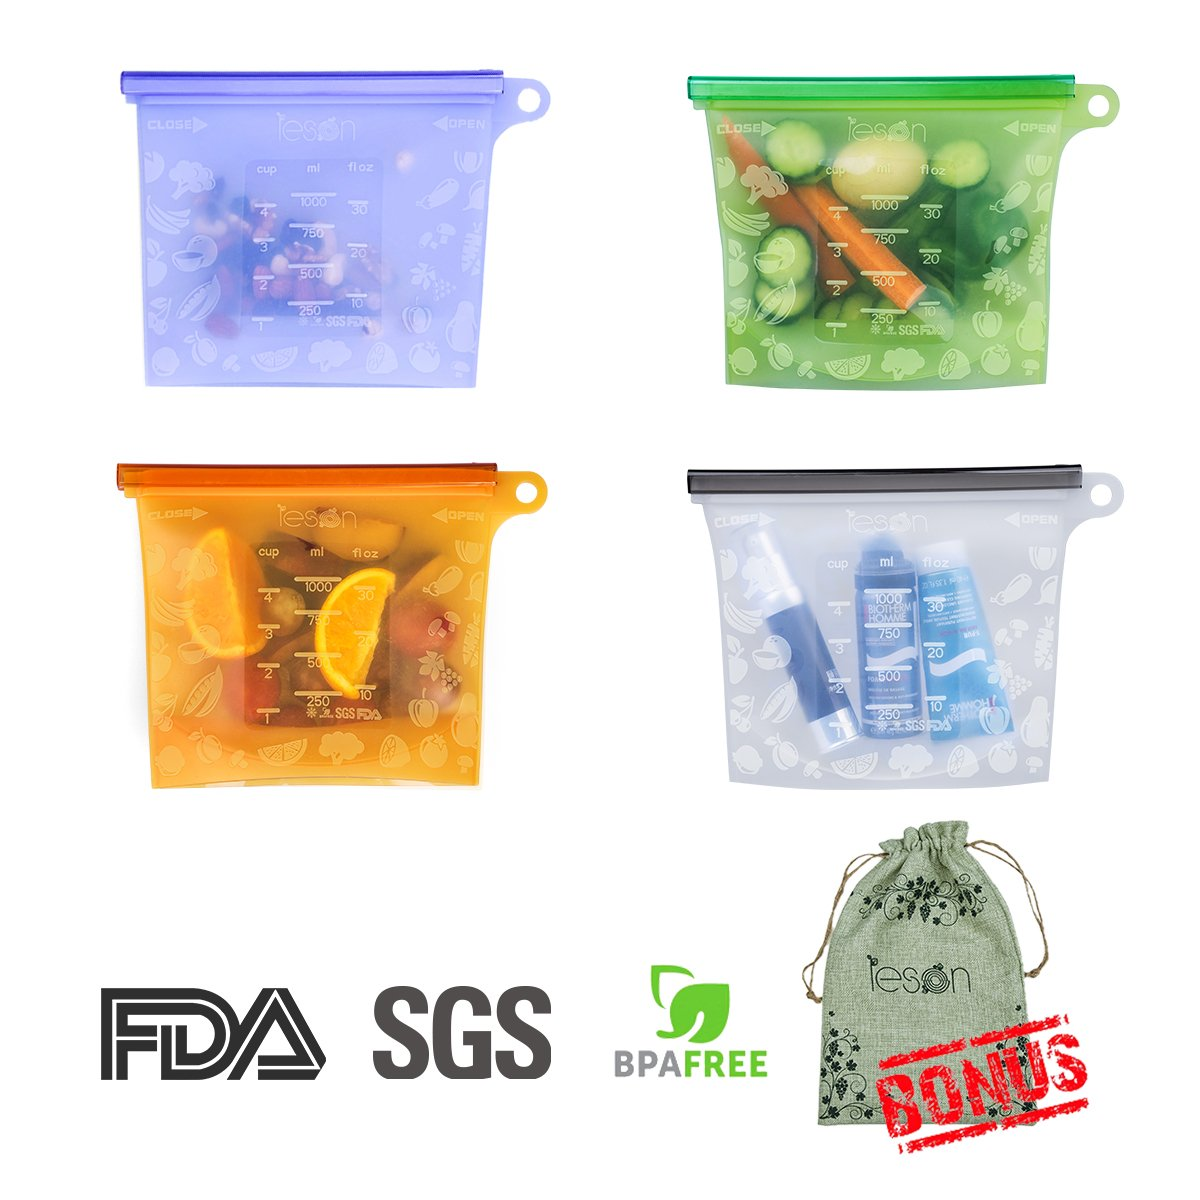 Reusable Silicone Food Bag Storage Preservation Bags Container Versatile Cooking Bag, Storing Fruits Vegetables Meat Milk for Freezer Steamer Microwave (4 Packs) by Leson